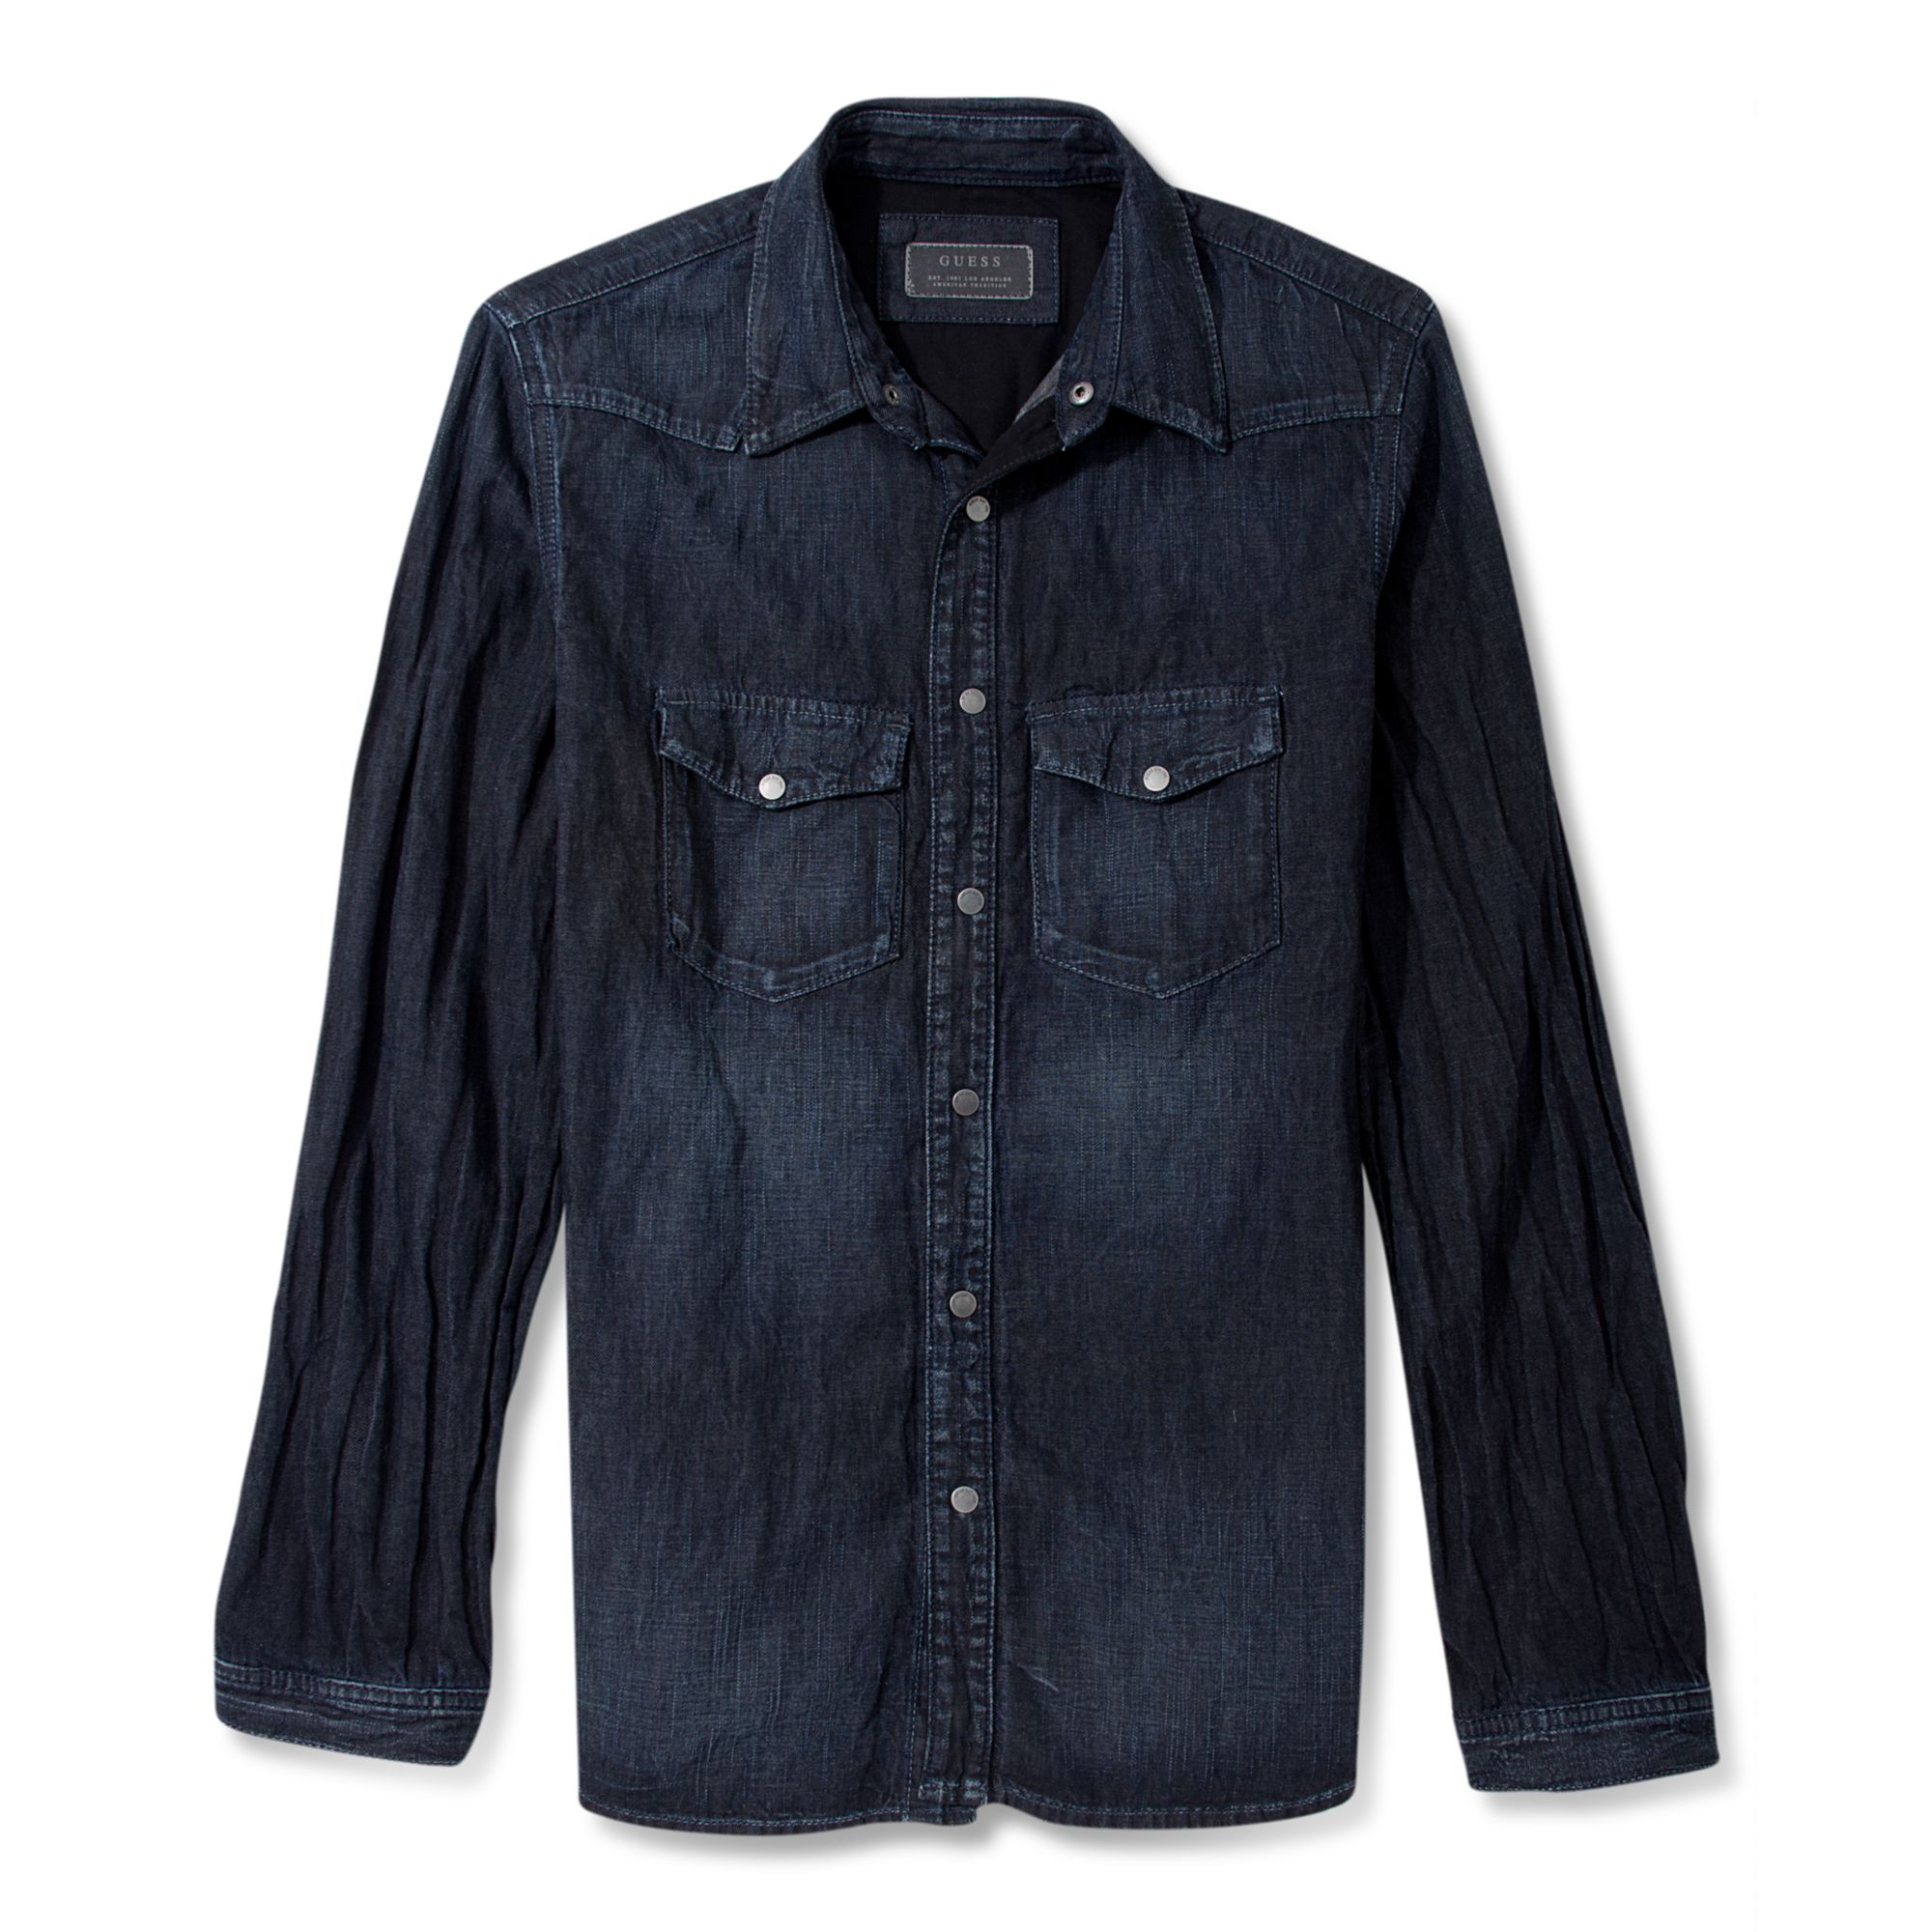 Guess Long Sleeve Shirt Lincoln Denim In Blue For Men Lyst